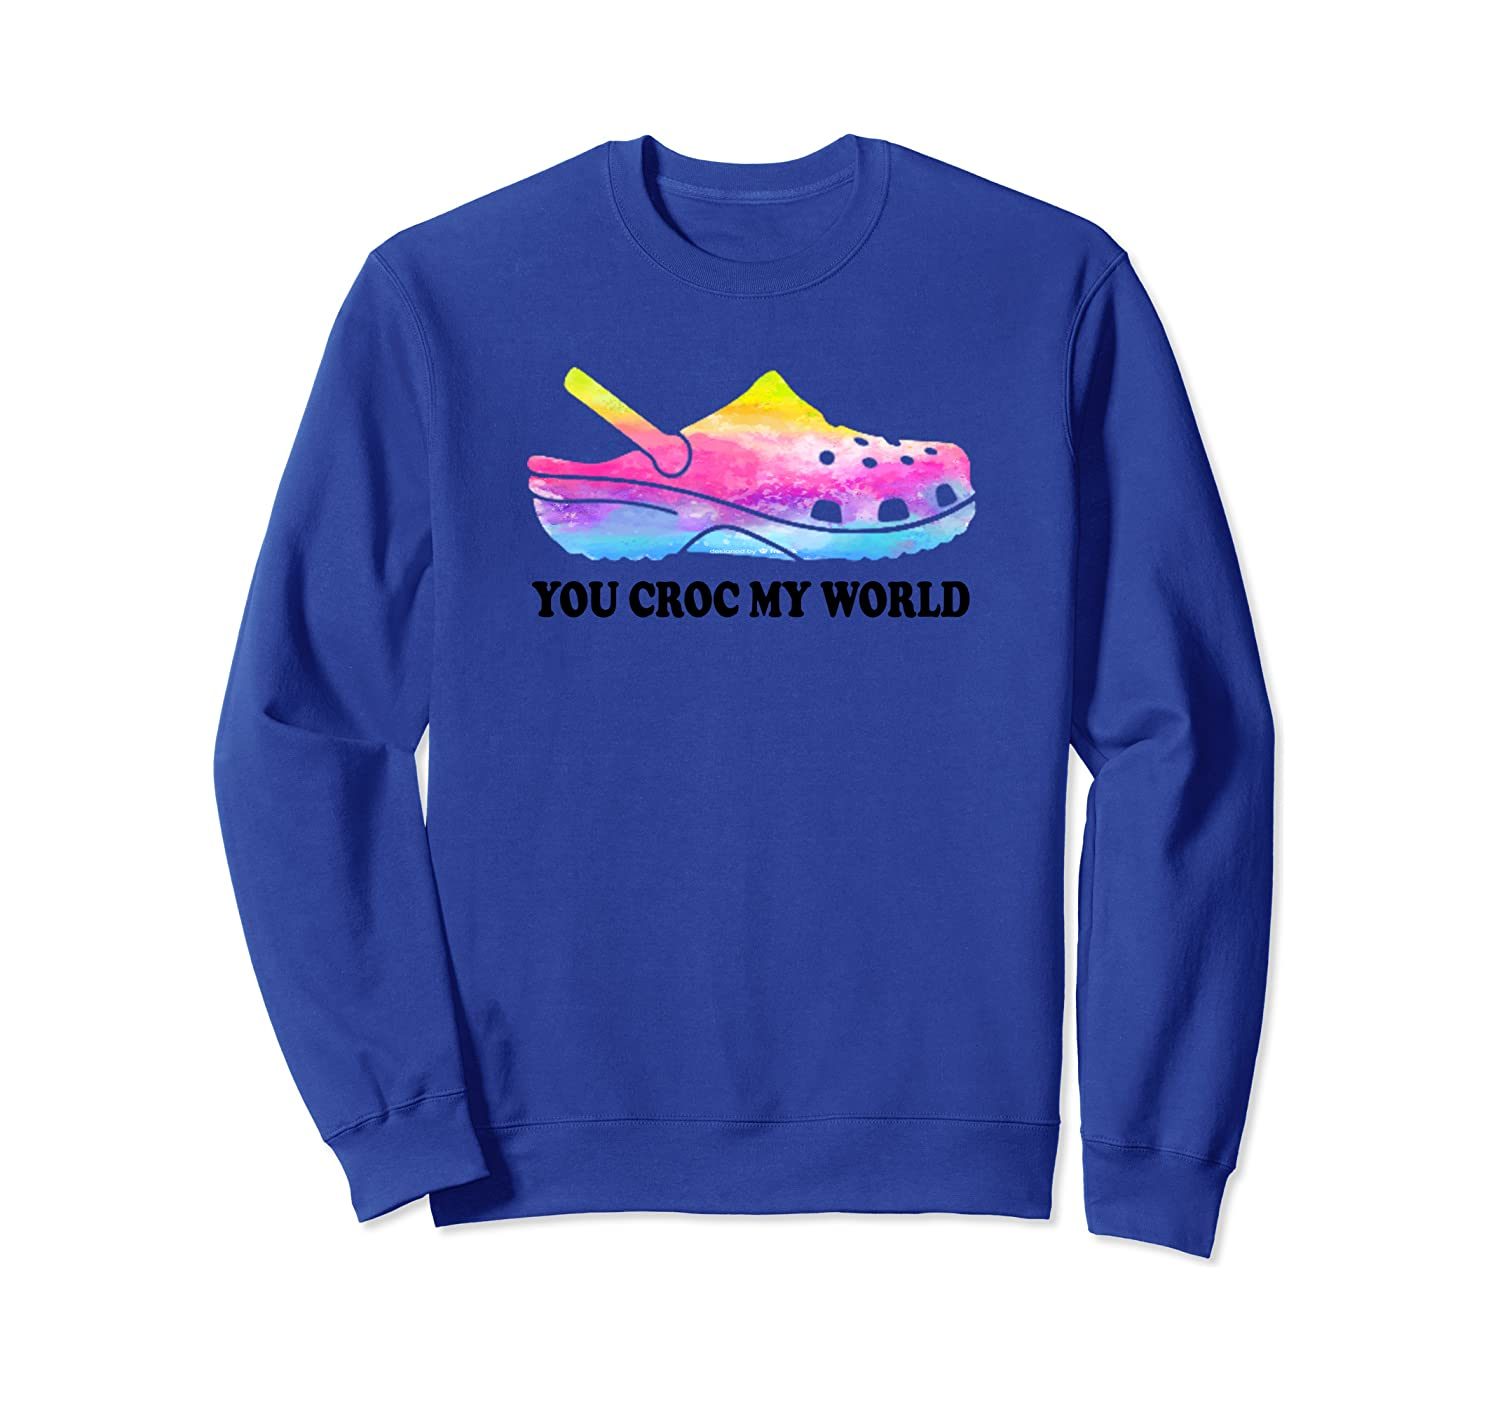 You Croc My World Tie Dye Sweatshirt Unisex Tshirt